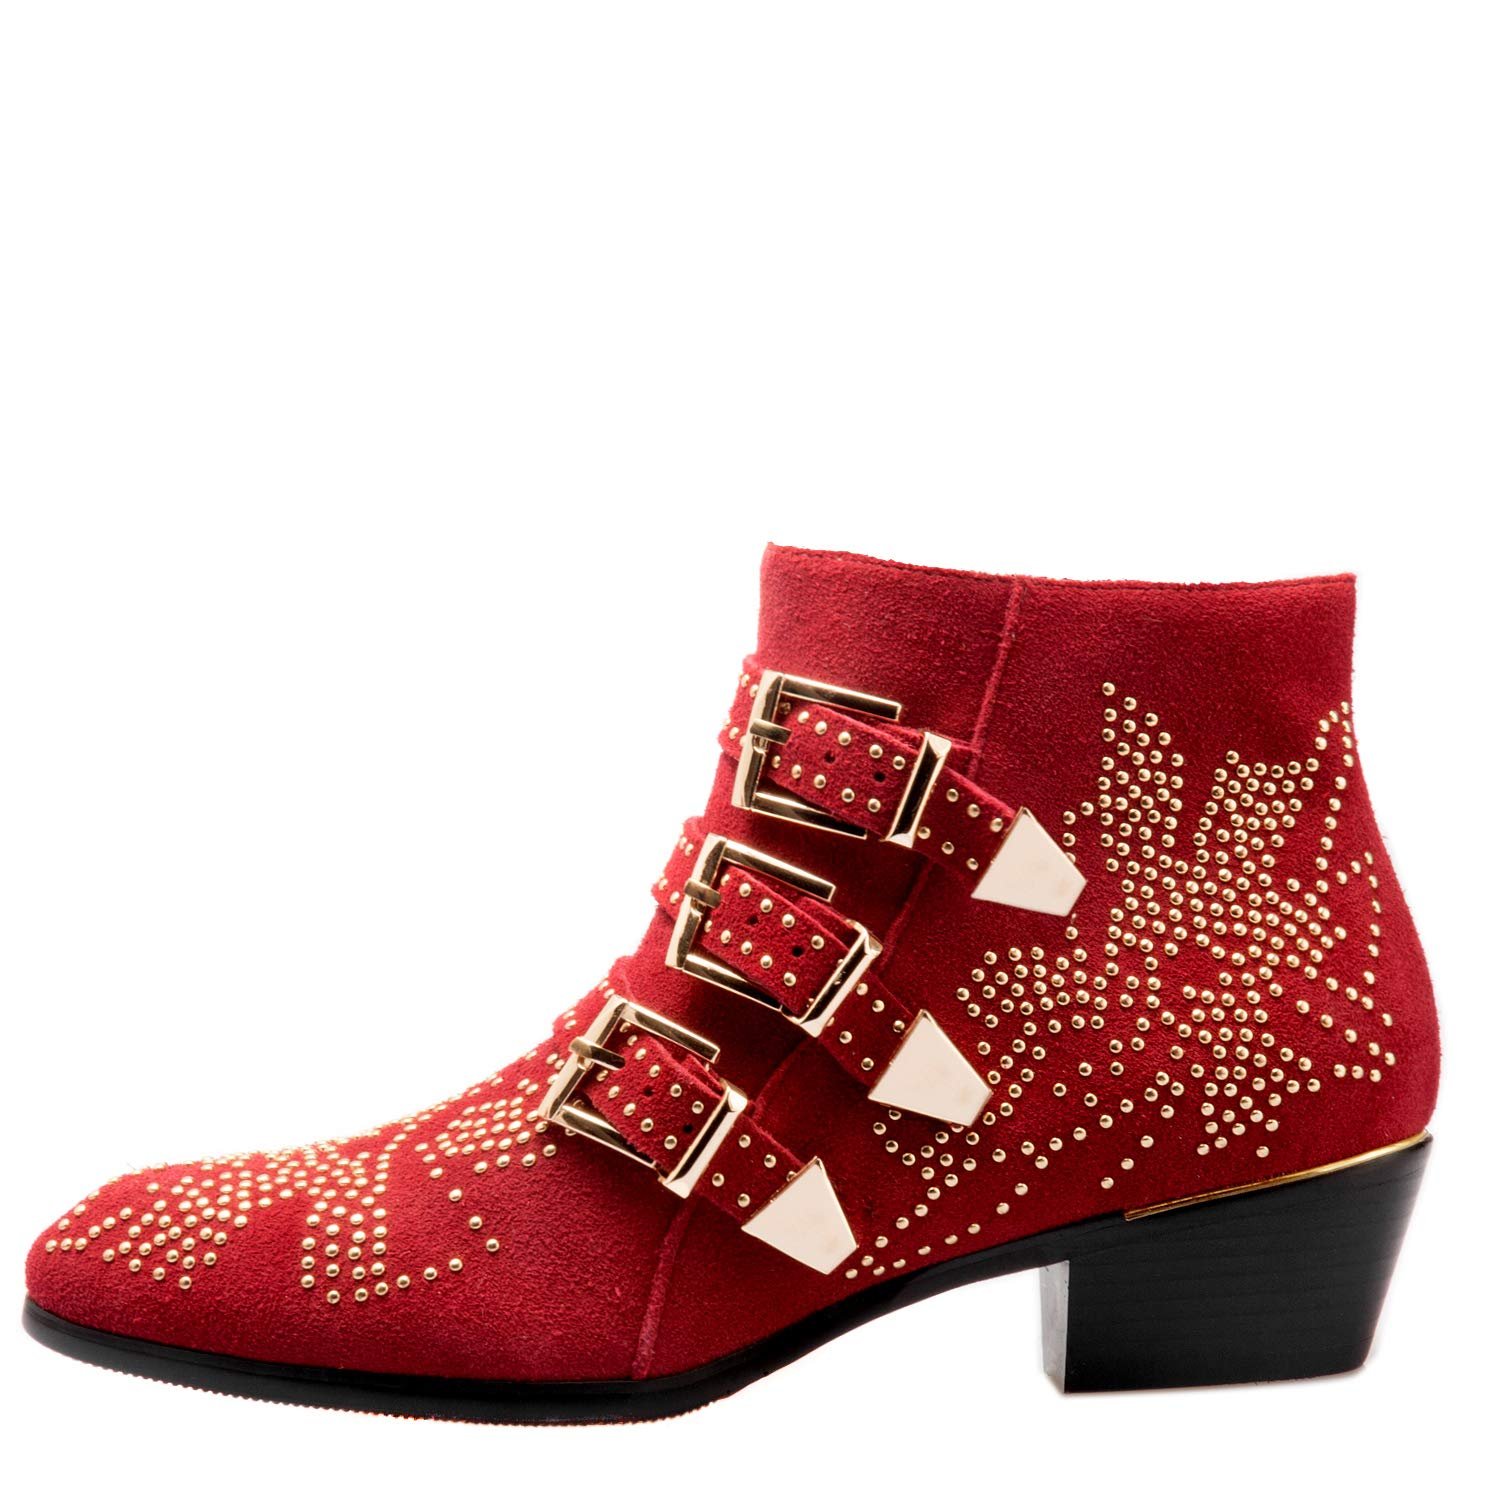 Red-sude Comfity Boots for Women,Women's Leather Boot Rivets Studded shoes Metal Buckle Low Heels Ankle Boots